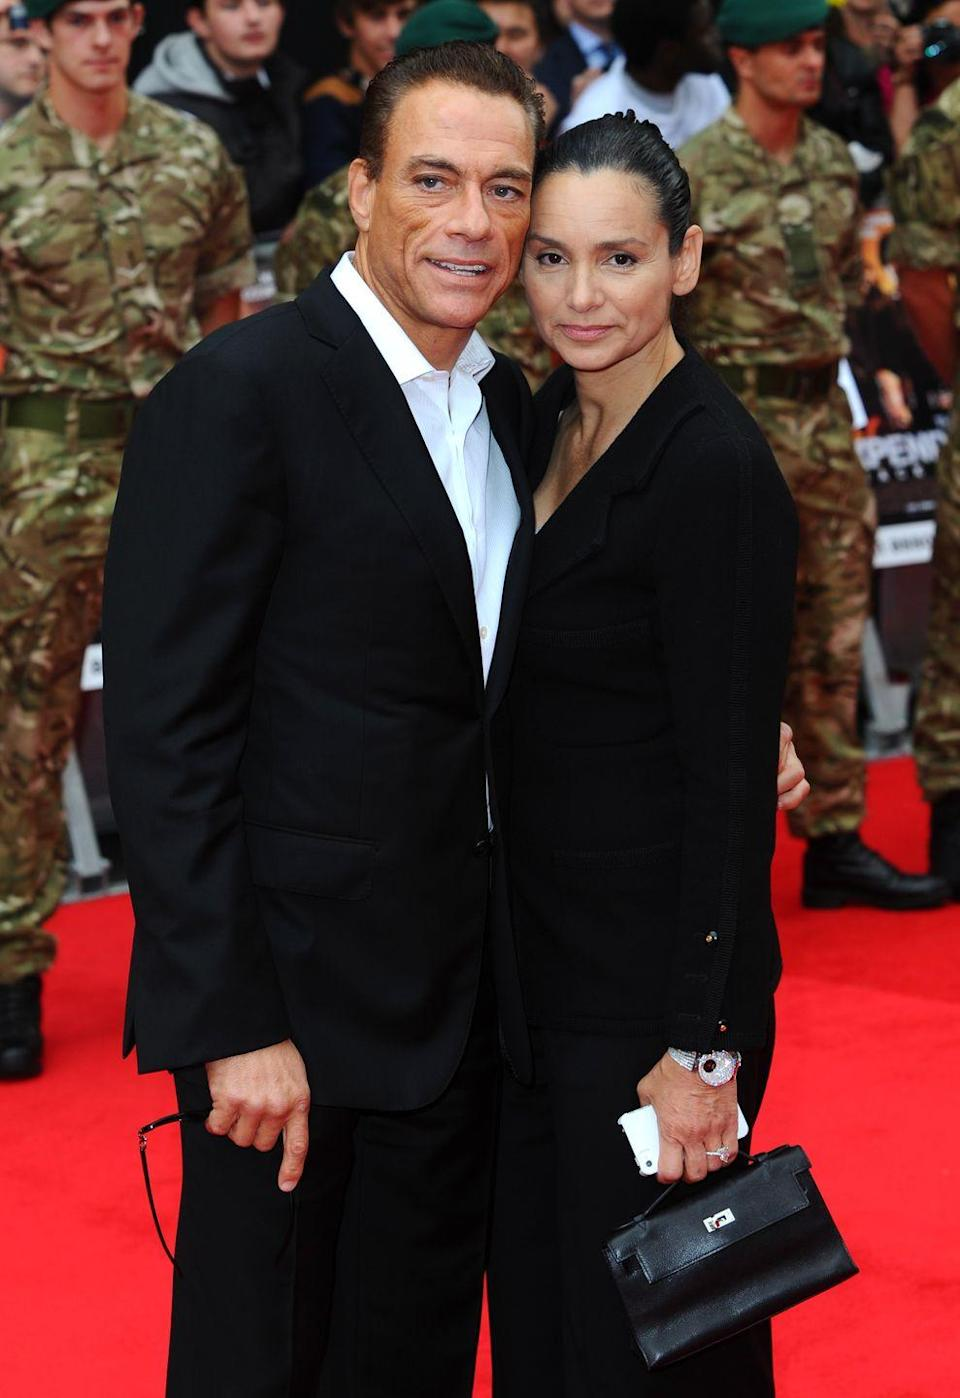 """<p>Jean-Claude Van Damme met bodybuilder Gladys Portugues at the height of his fame in the mid-'80s. They married in 1987, but divorced in 1992. After marrying and divorcing actress Darcy LaPier, Jean-Claude reunited with Gladys and they remarried in 1999. For the last 25 years, the couple has had their ups and downs. Gladys even <a href=""""https://www.dailymail.co.uk/tvshowbiz/article-3104862/Jean-Claude-Van-Damme-says-divorce-claims-s-reconciled-wife-Gladys-Portugues-s-married-divorced-remarried.html"""" rel=""""nofollow noopener"""" target=""""_blank"""" data-ylk=""""slk:filed for divorce in 2015"""" class=""""link rapid-noclick-resp"""">filed for divorce in 2015</a>, but later called it off, and they've remained together.</p>"""